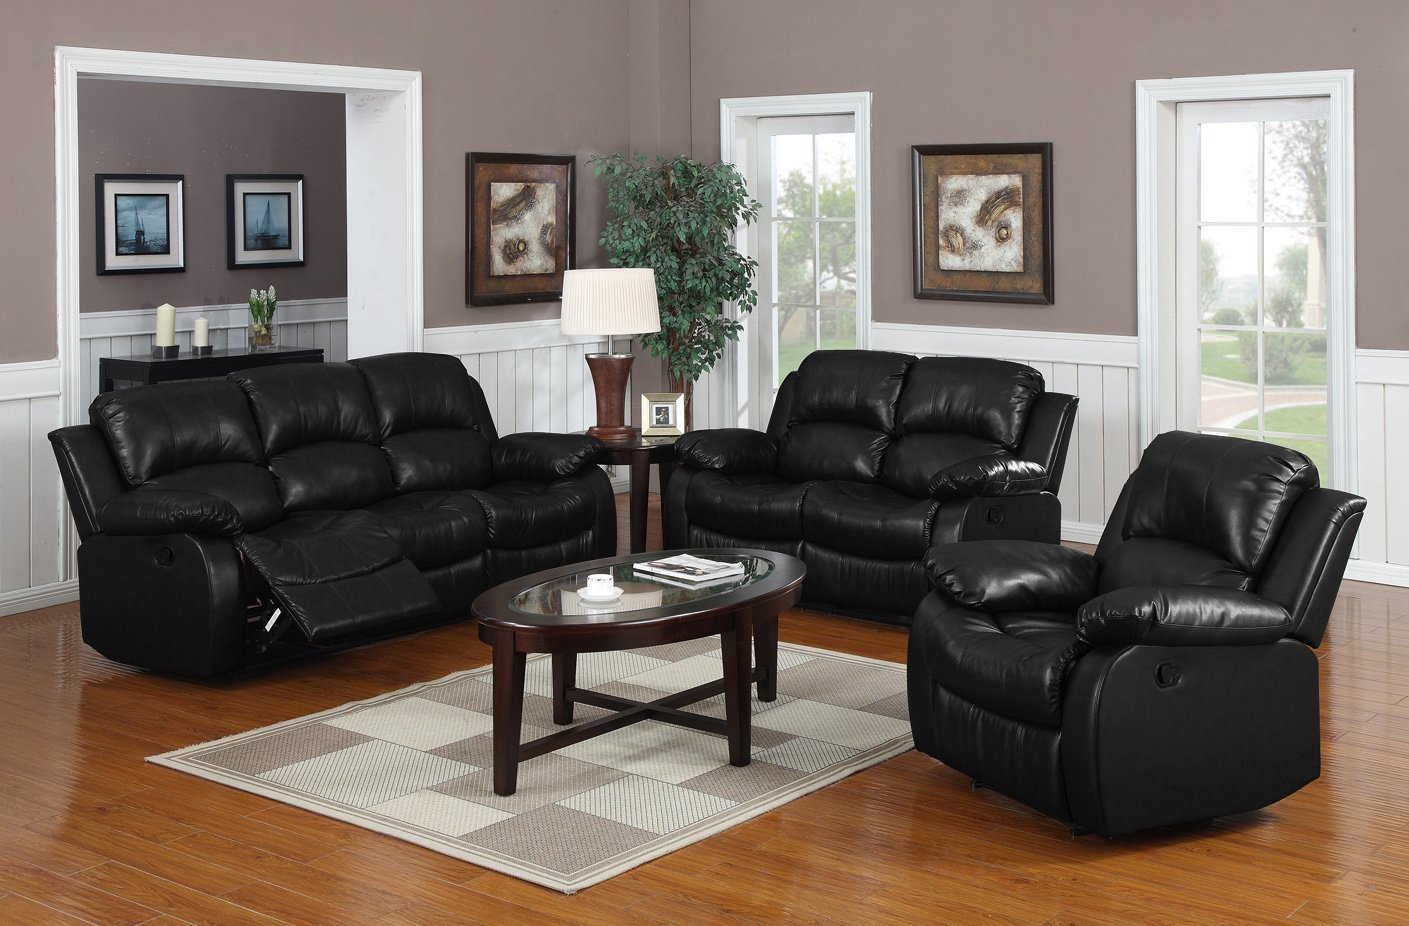 Classic and Traditional Black Real Grain Leather Recliner set - Sofa Double Recliner - Loveseat Recliner - Single